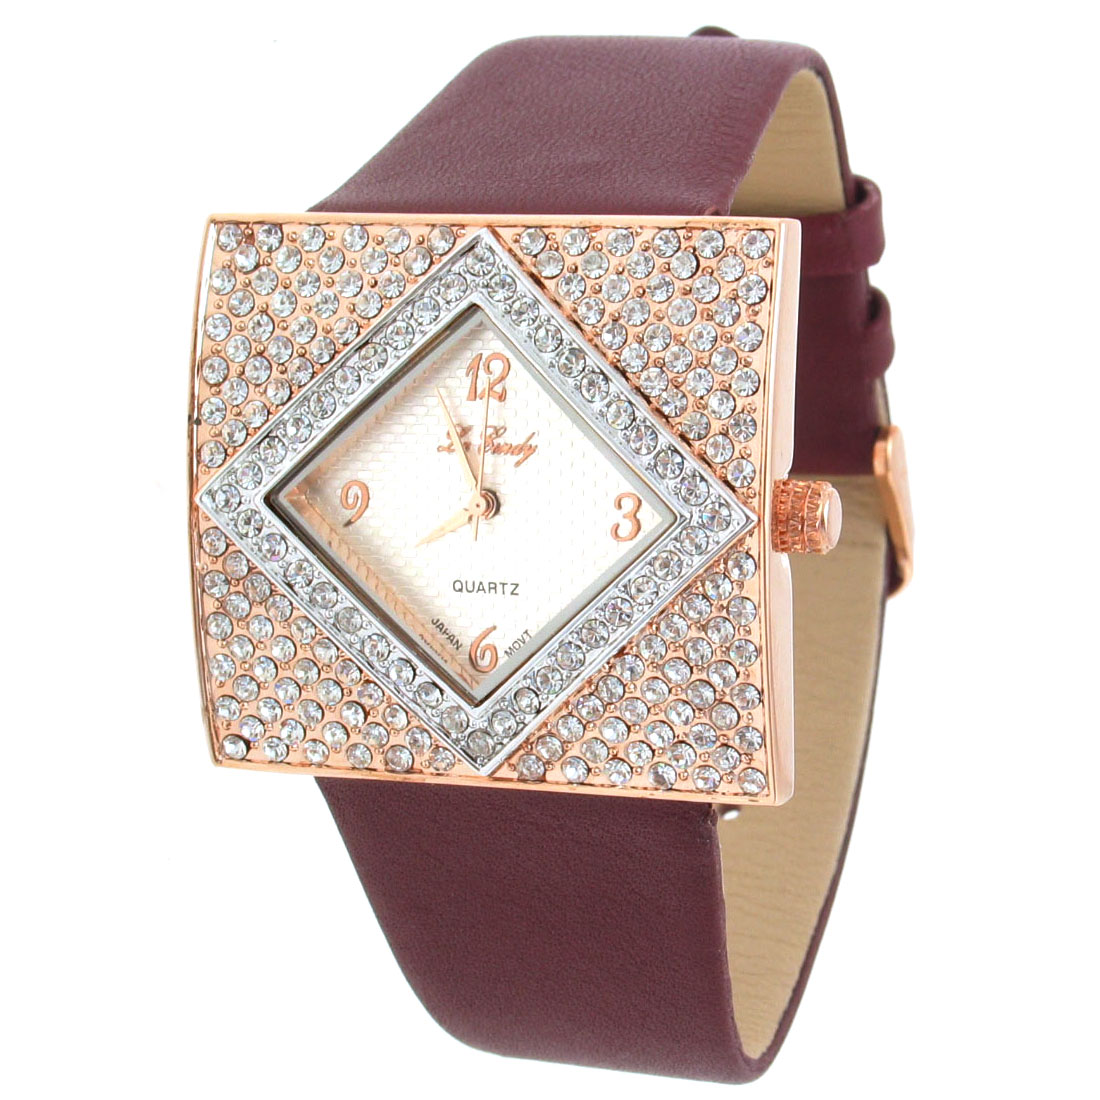 Fashion Jewelry Brown Band Simulated Crystal Style Beads Quartz Wrist Watch